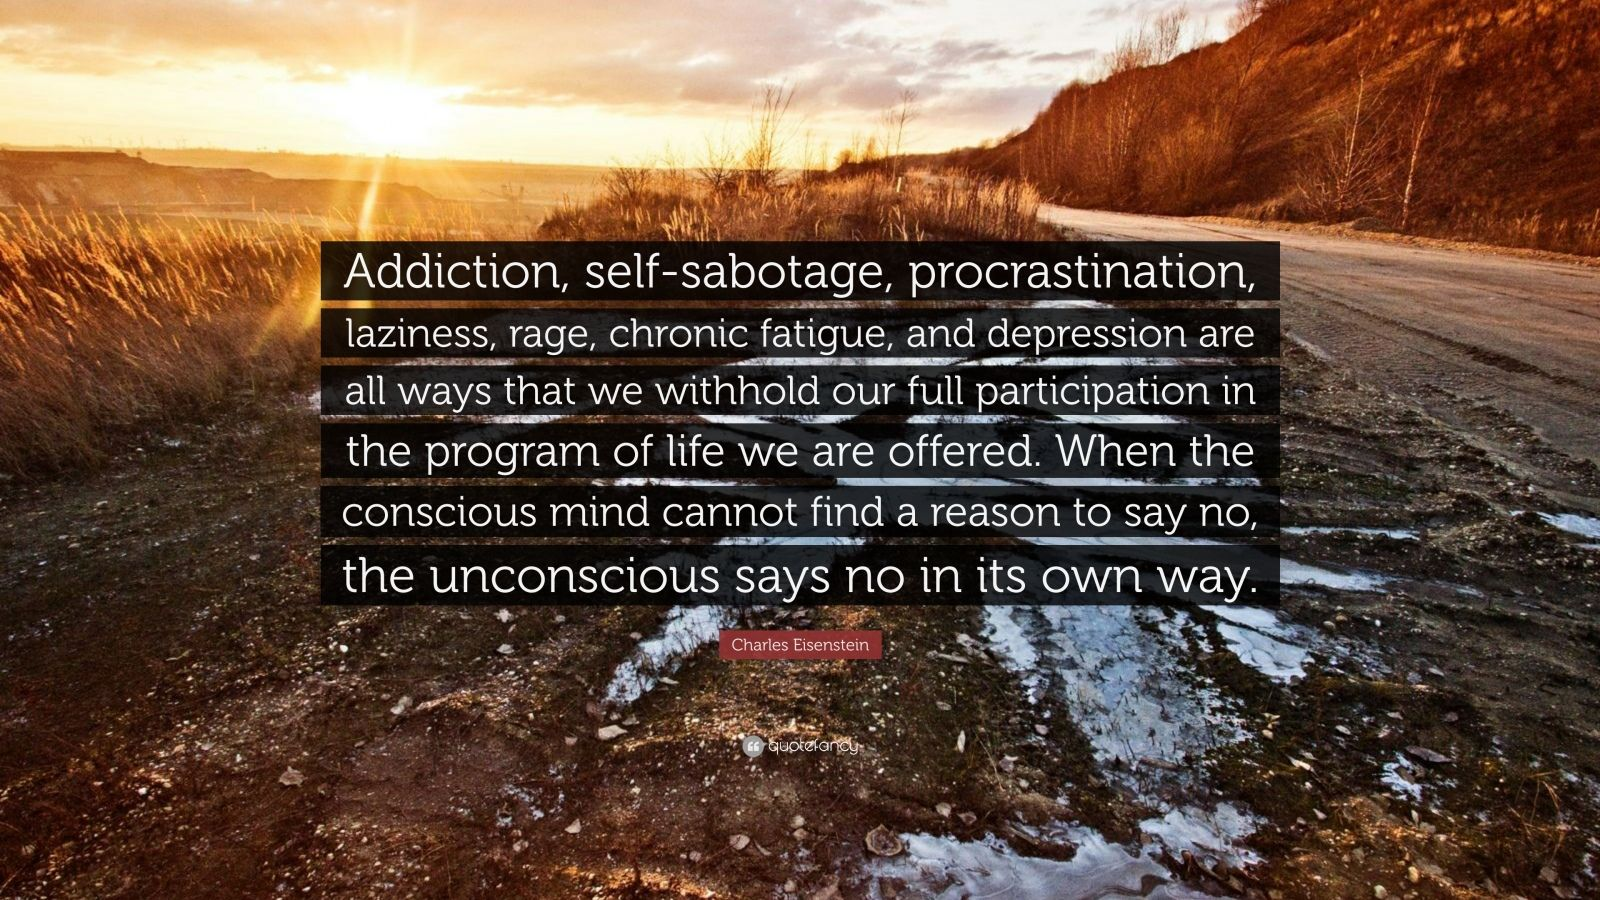 "Charles Eisenstein Quote: ""Addiction, self-sabotage, procrastination, laziness, rage, chronic fatigue, and depression are all ways that we withhold our full participation in the program of life we are offered. When the conscious mind cannot find a reason to say no, the unconscious says no in its own way."""